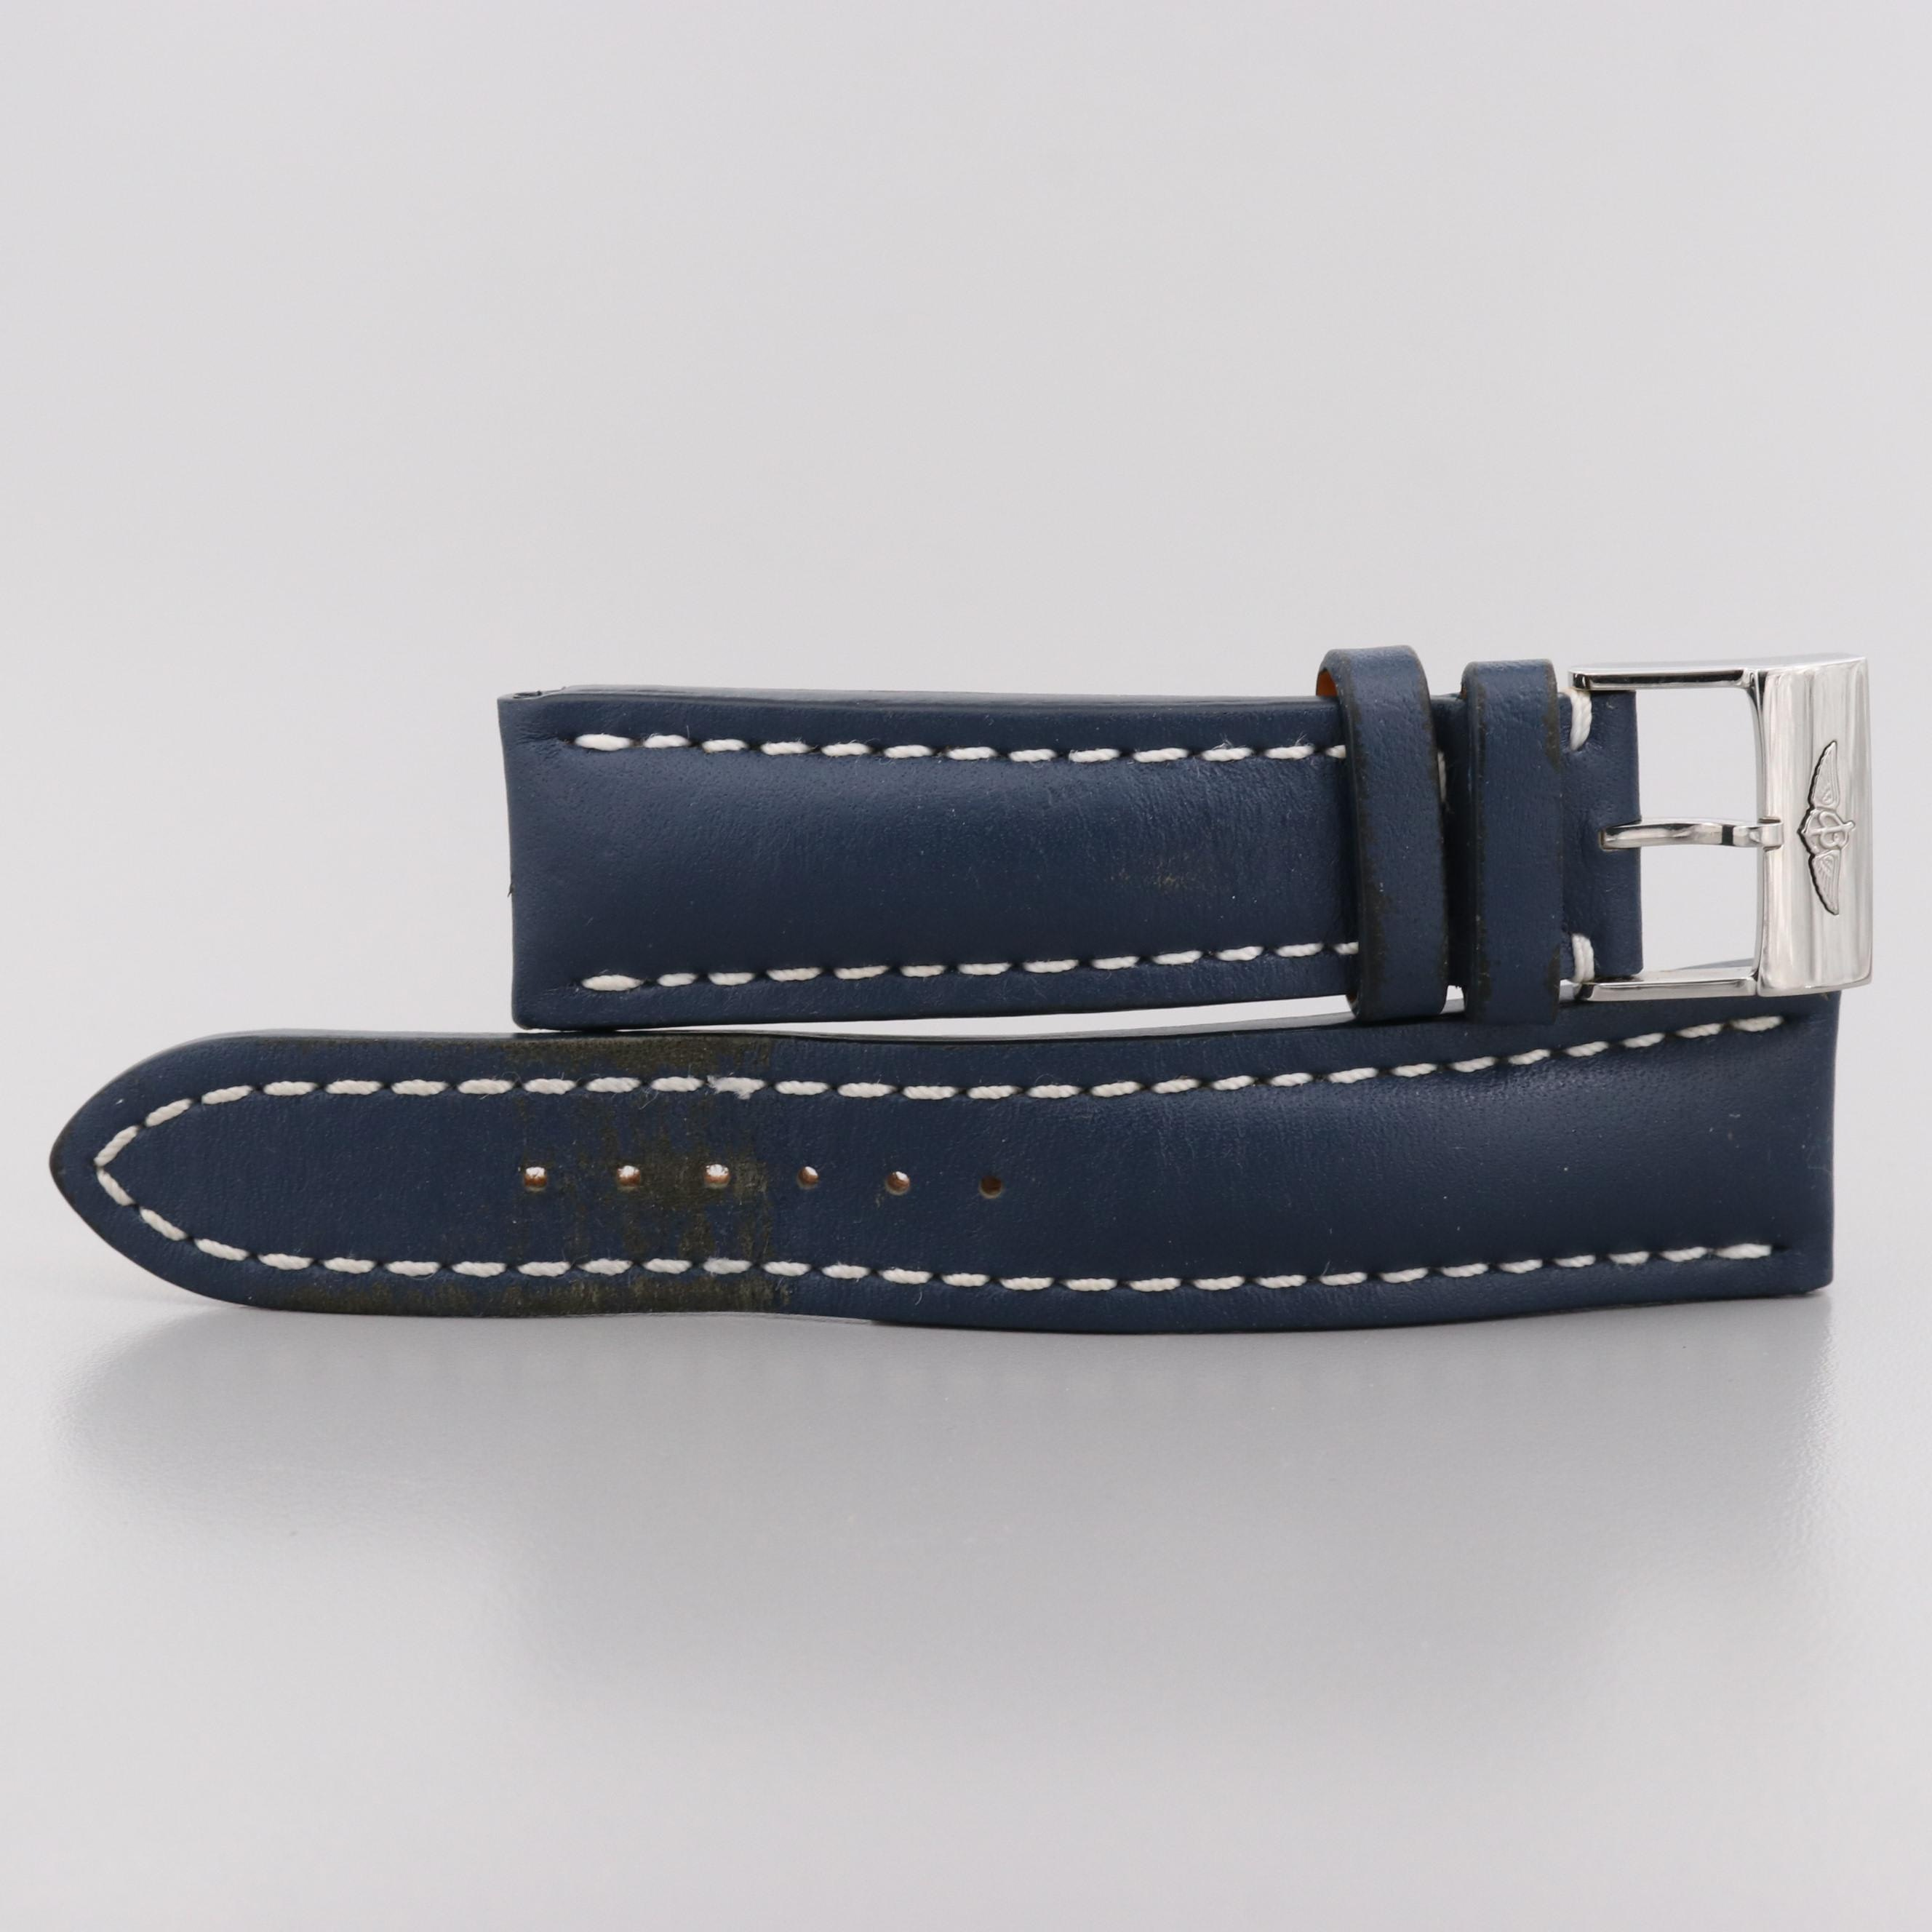 Breitling Navy Blue Leather Watch Strap